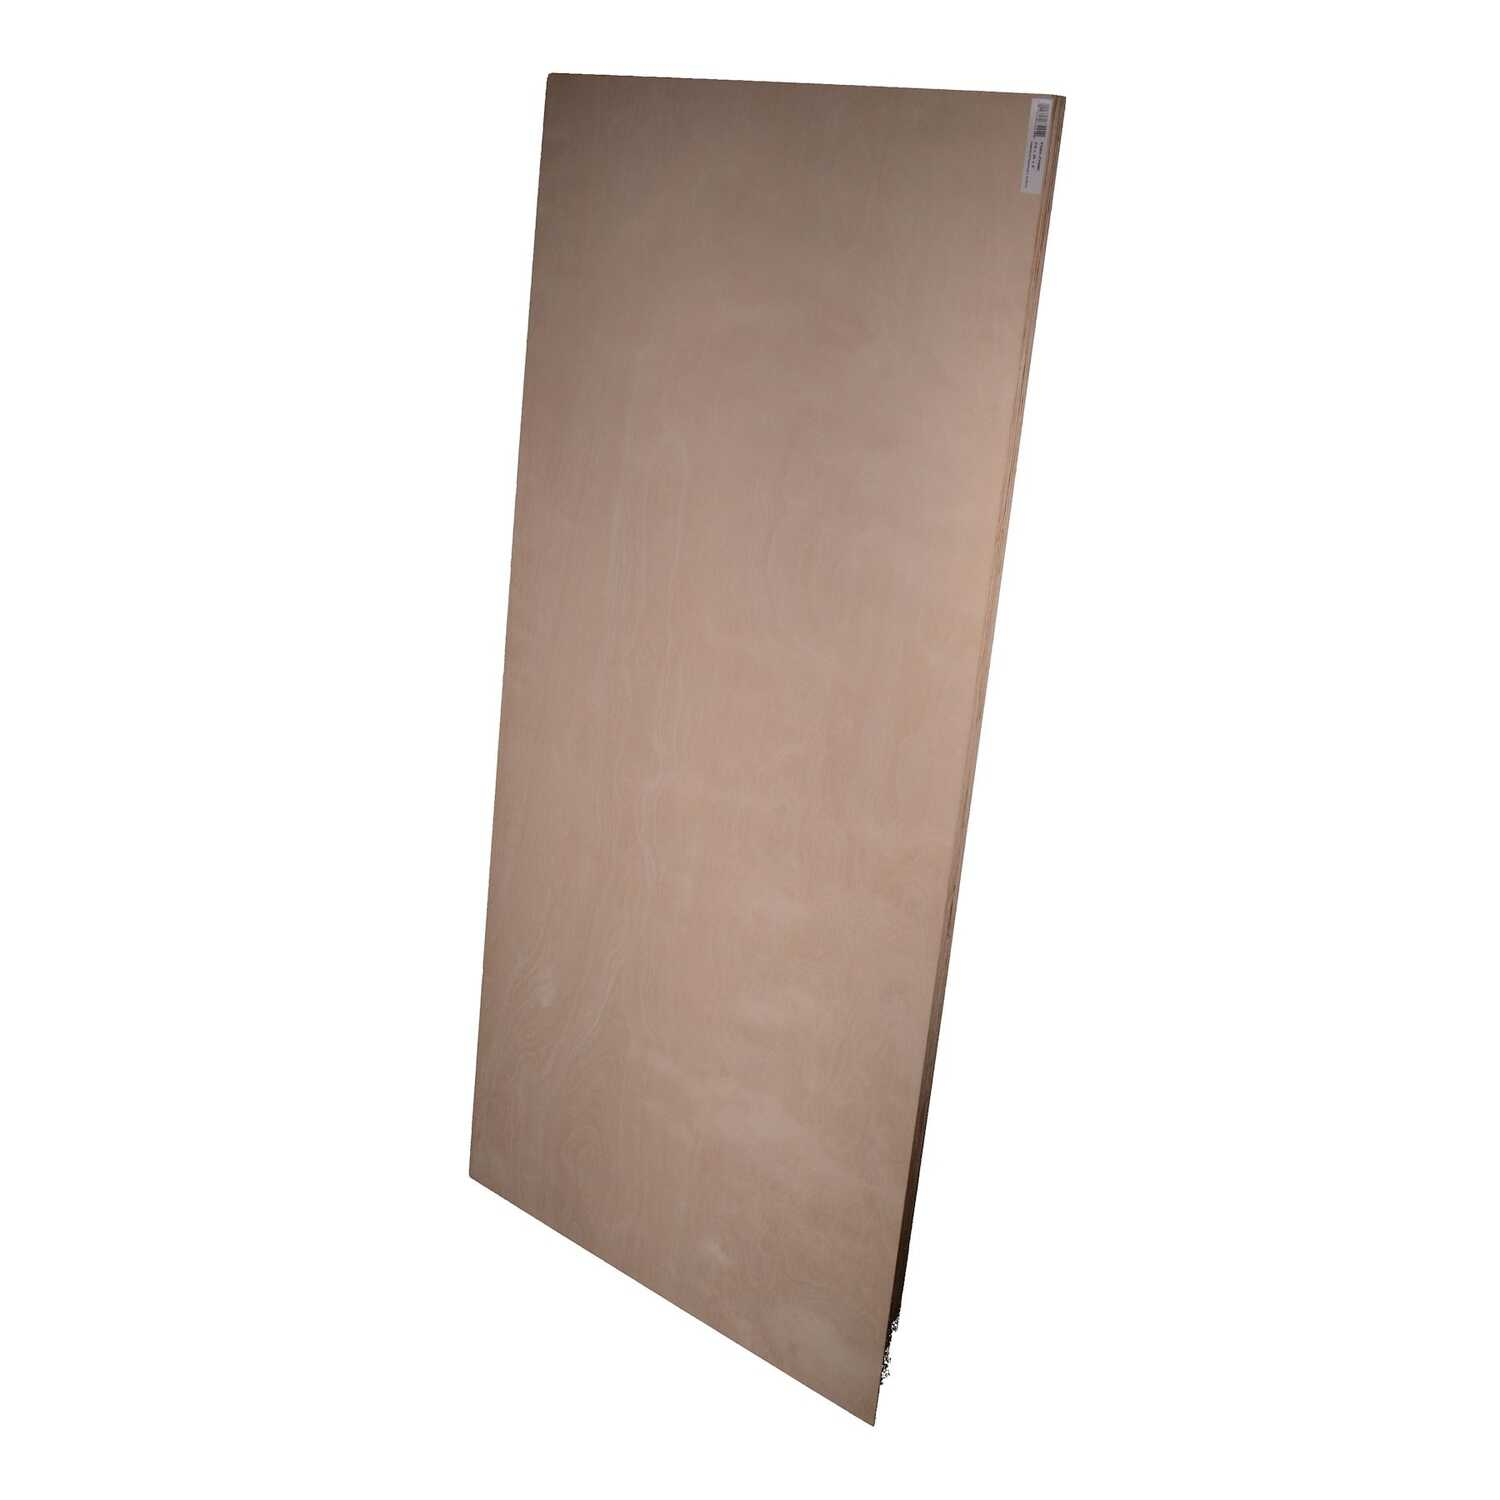 Alexandria Moulding  2 in. W x 4 in. L x 0.75 in.  Plywood